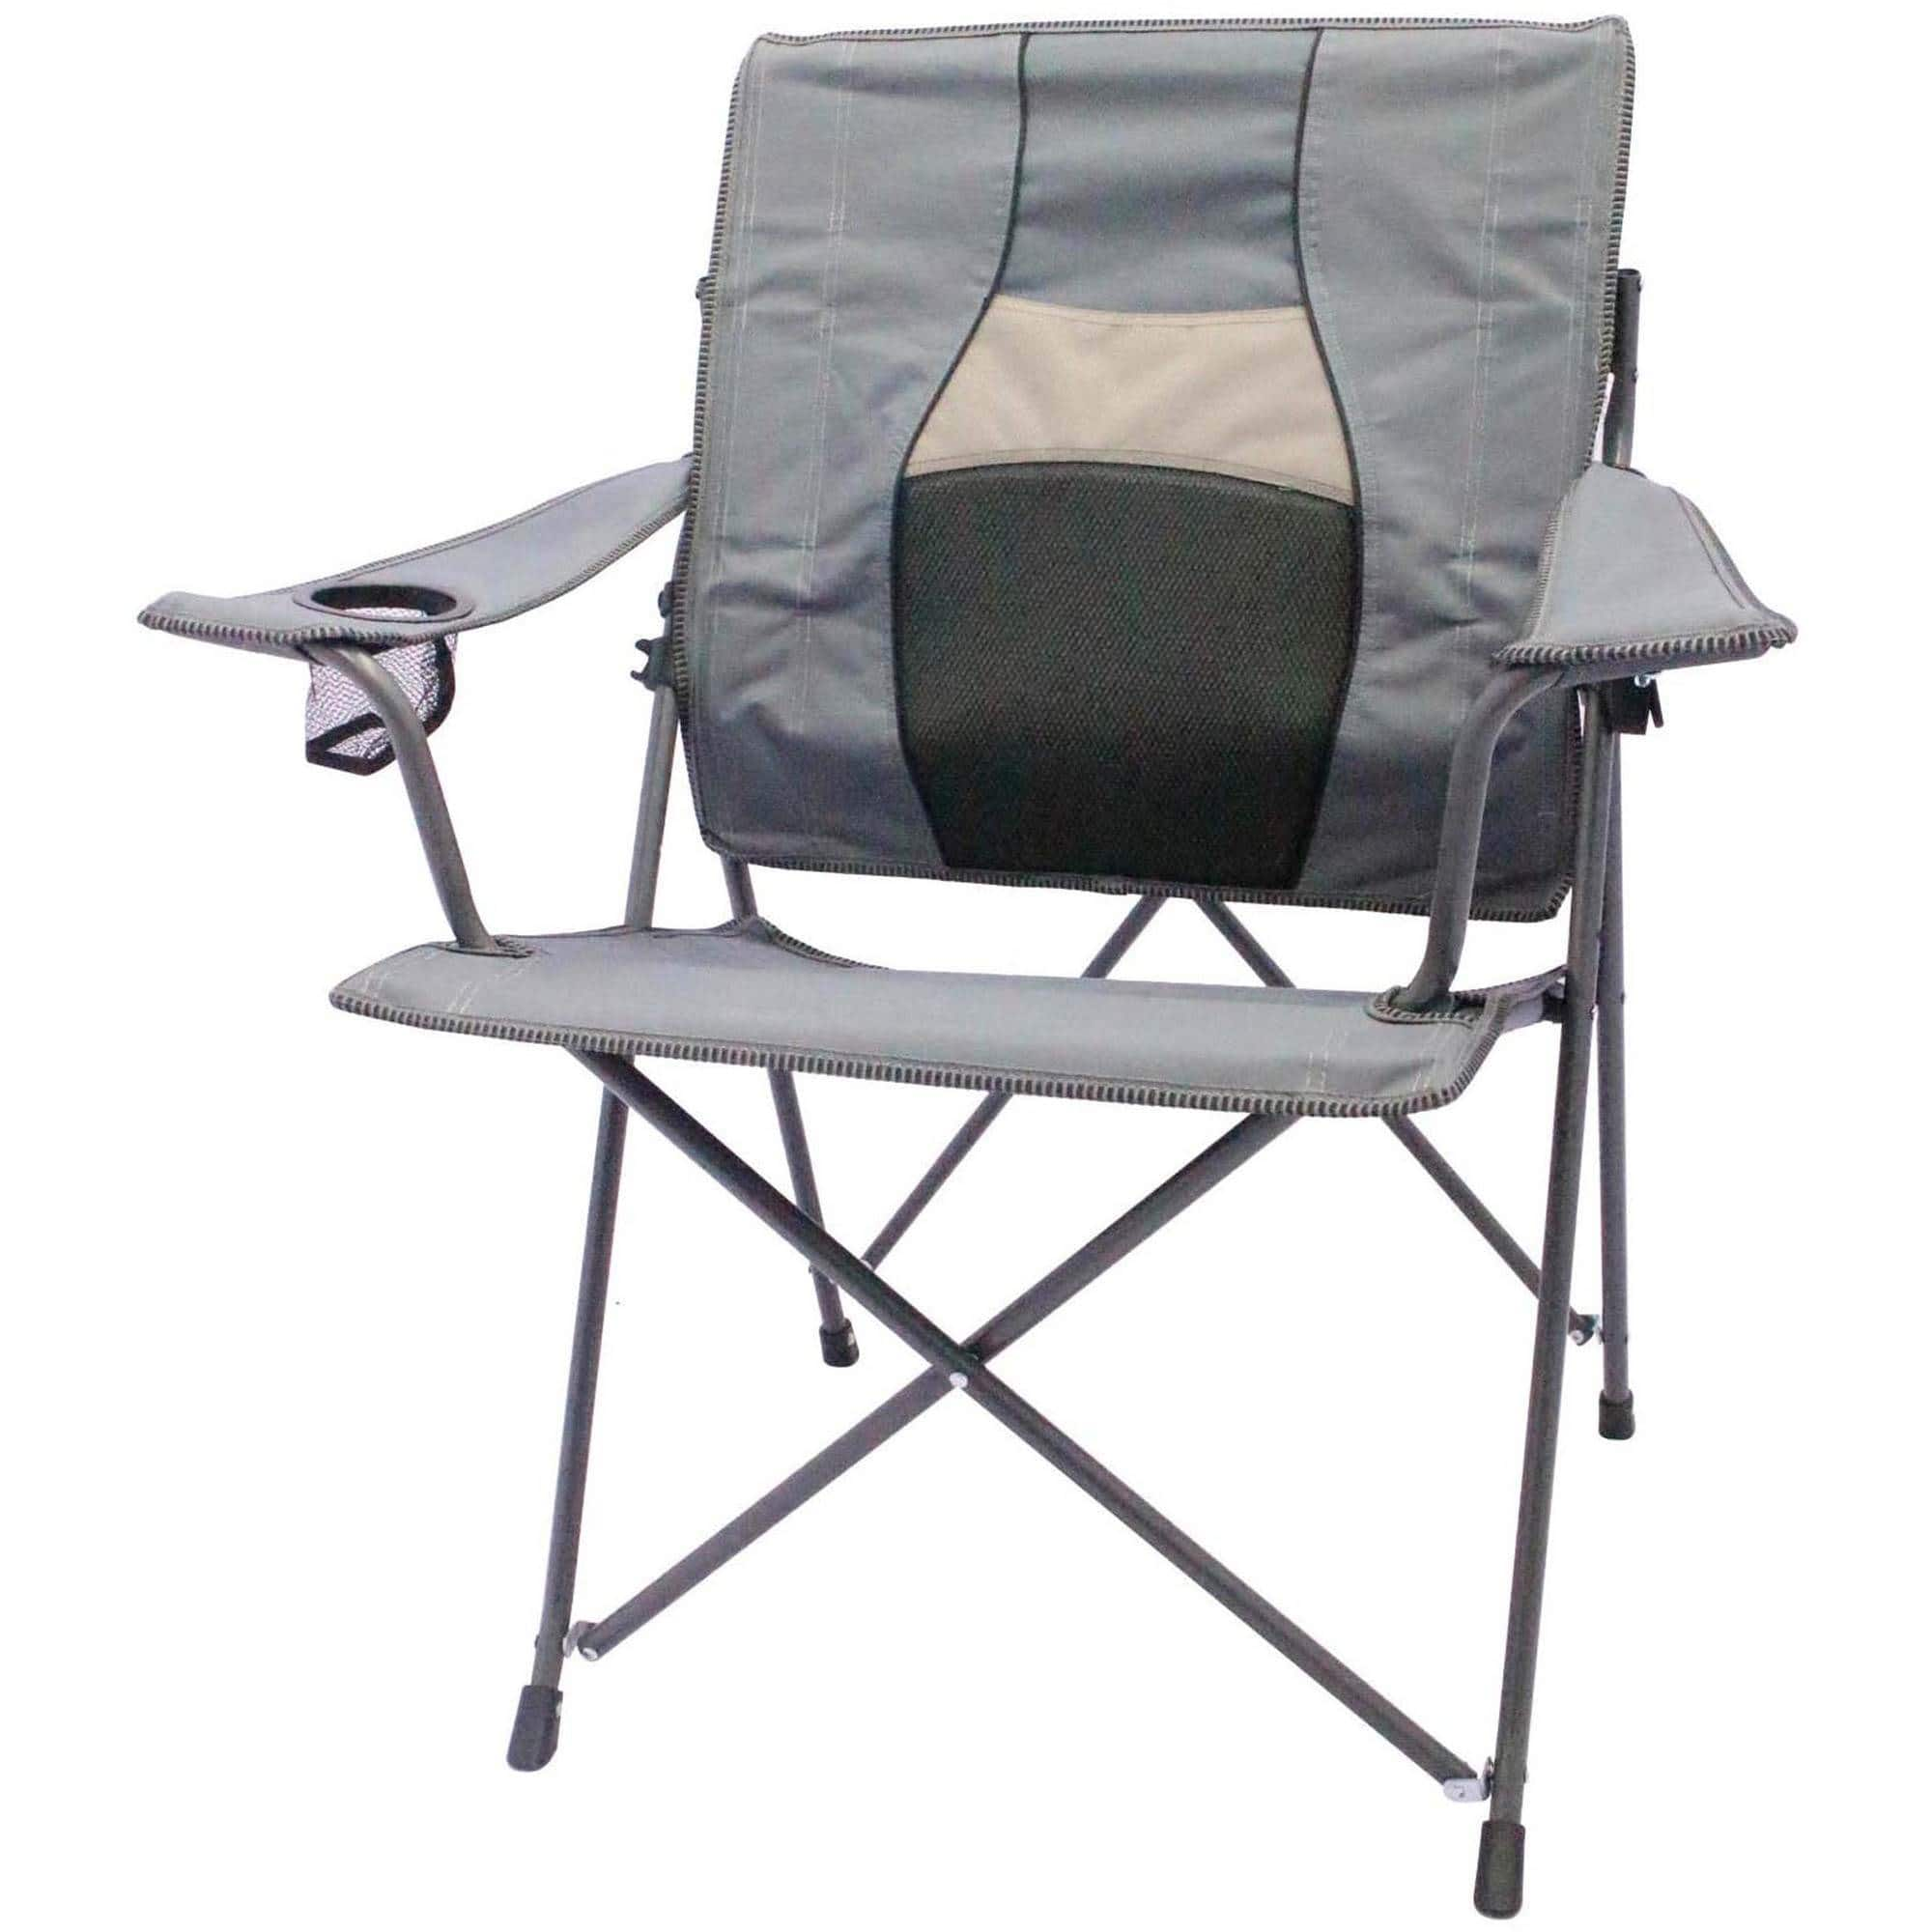 Trail Chair Ozark Trail Back Care Folding Chair Gray Slickdeals